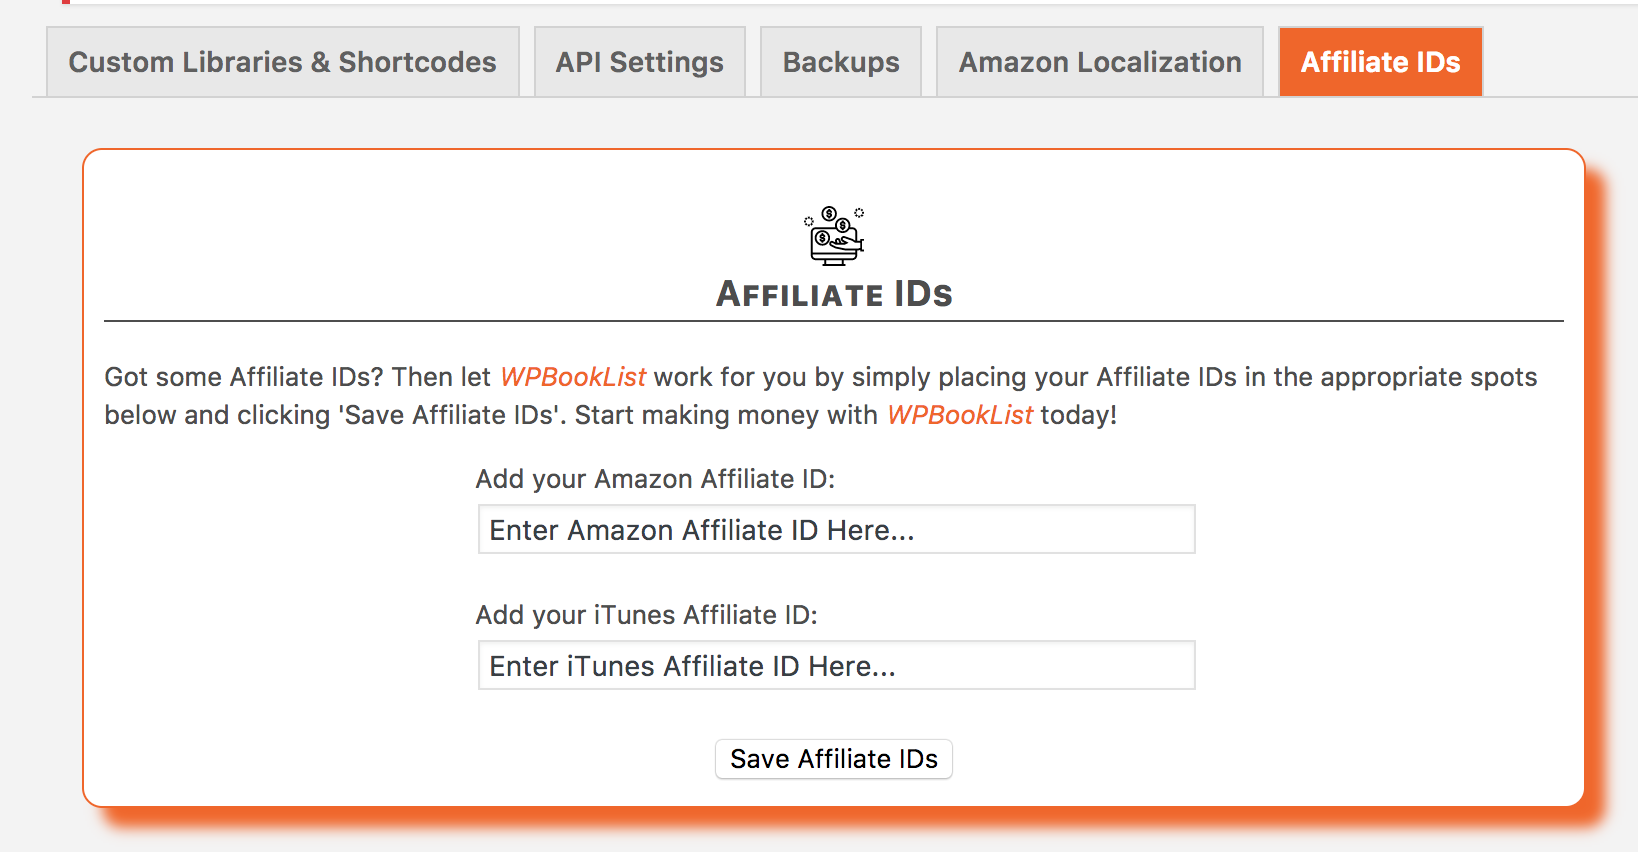 "With the <a href=""http://wpbooklist.com/index.php/downloads/affiliate-extension/""> Affiliates Extension</a>, you can add your Amazon & iTunes Affiliate ID to each book, giving you credit each time a visitor clicks on and/or purchases a title."